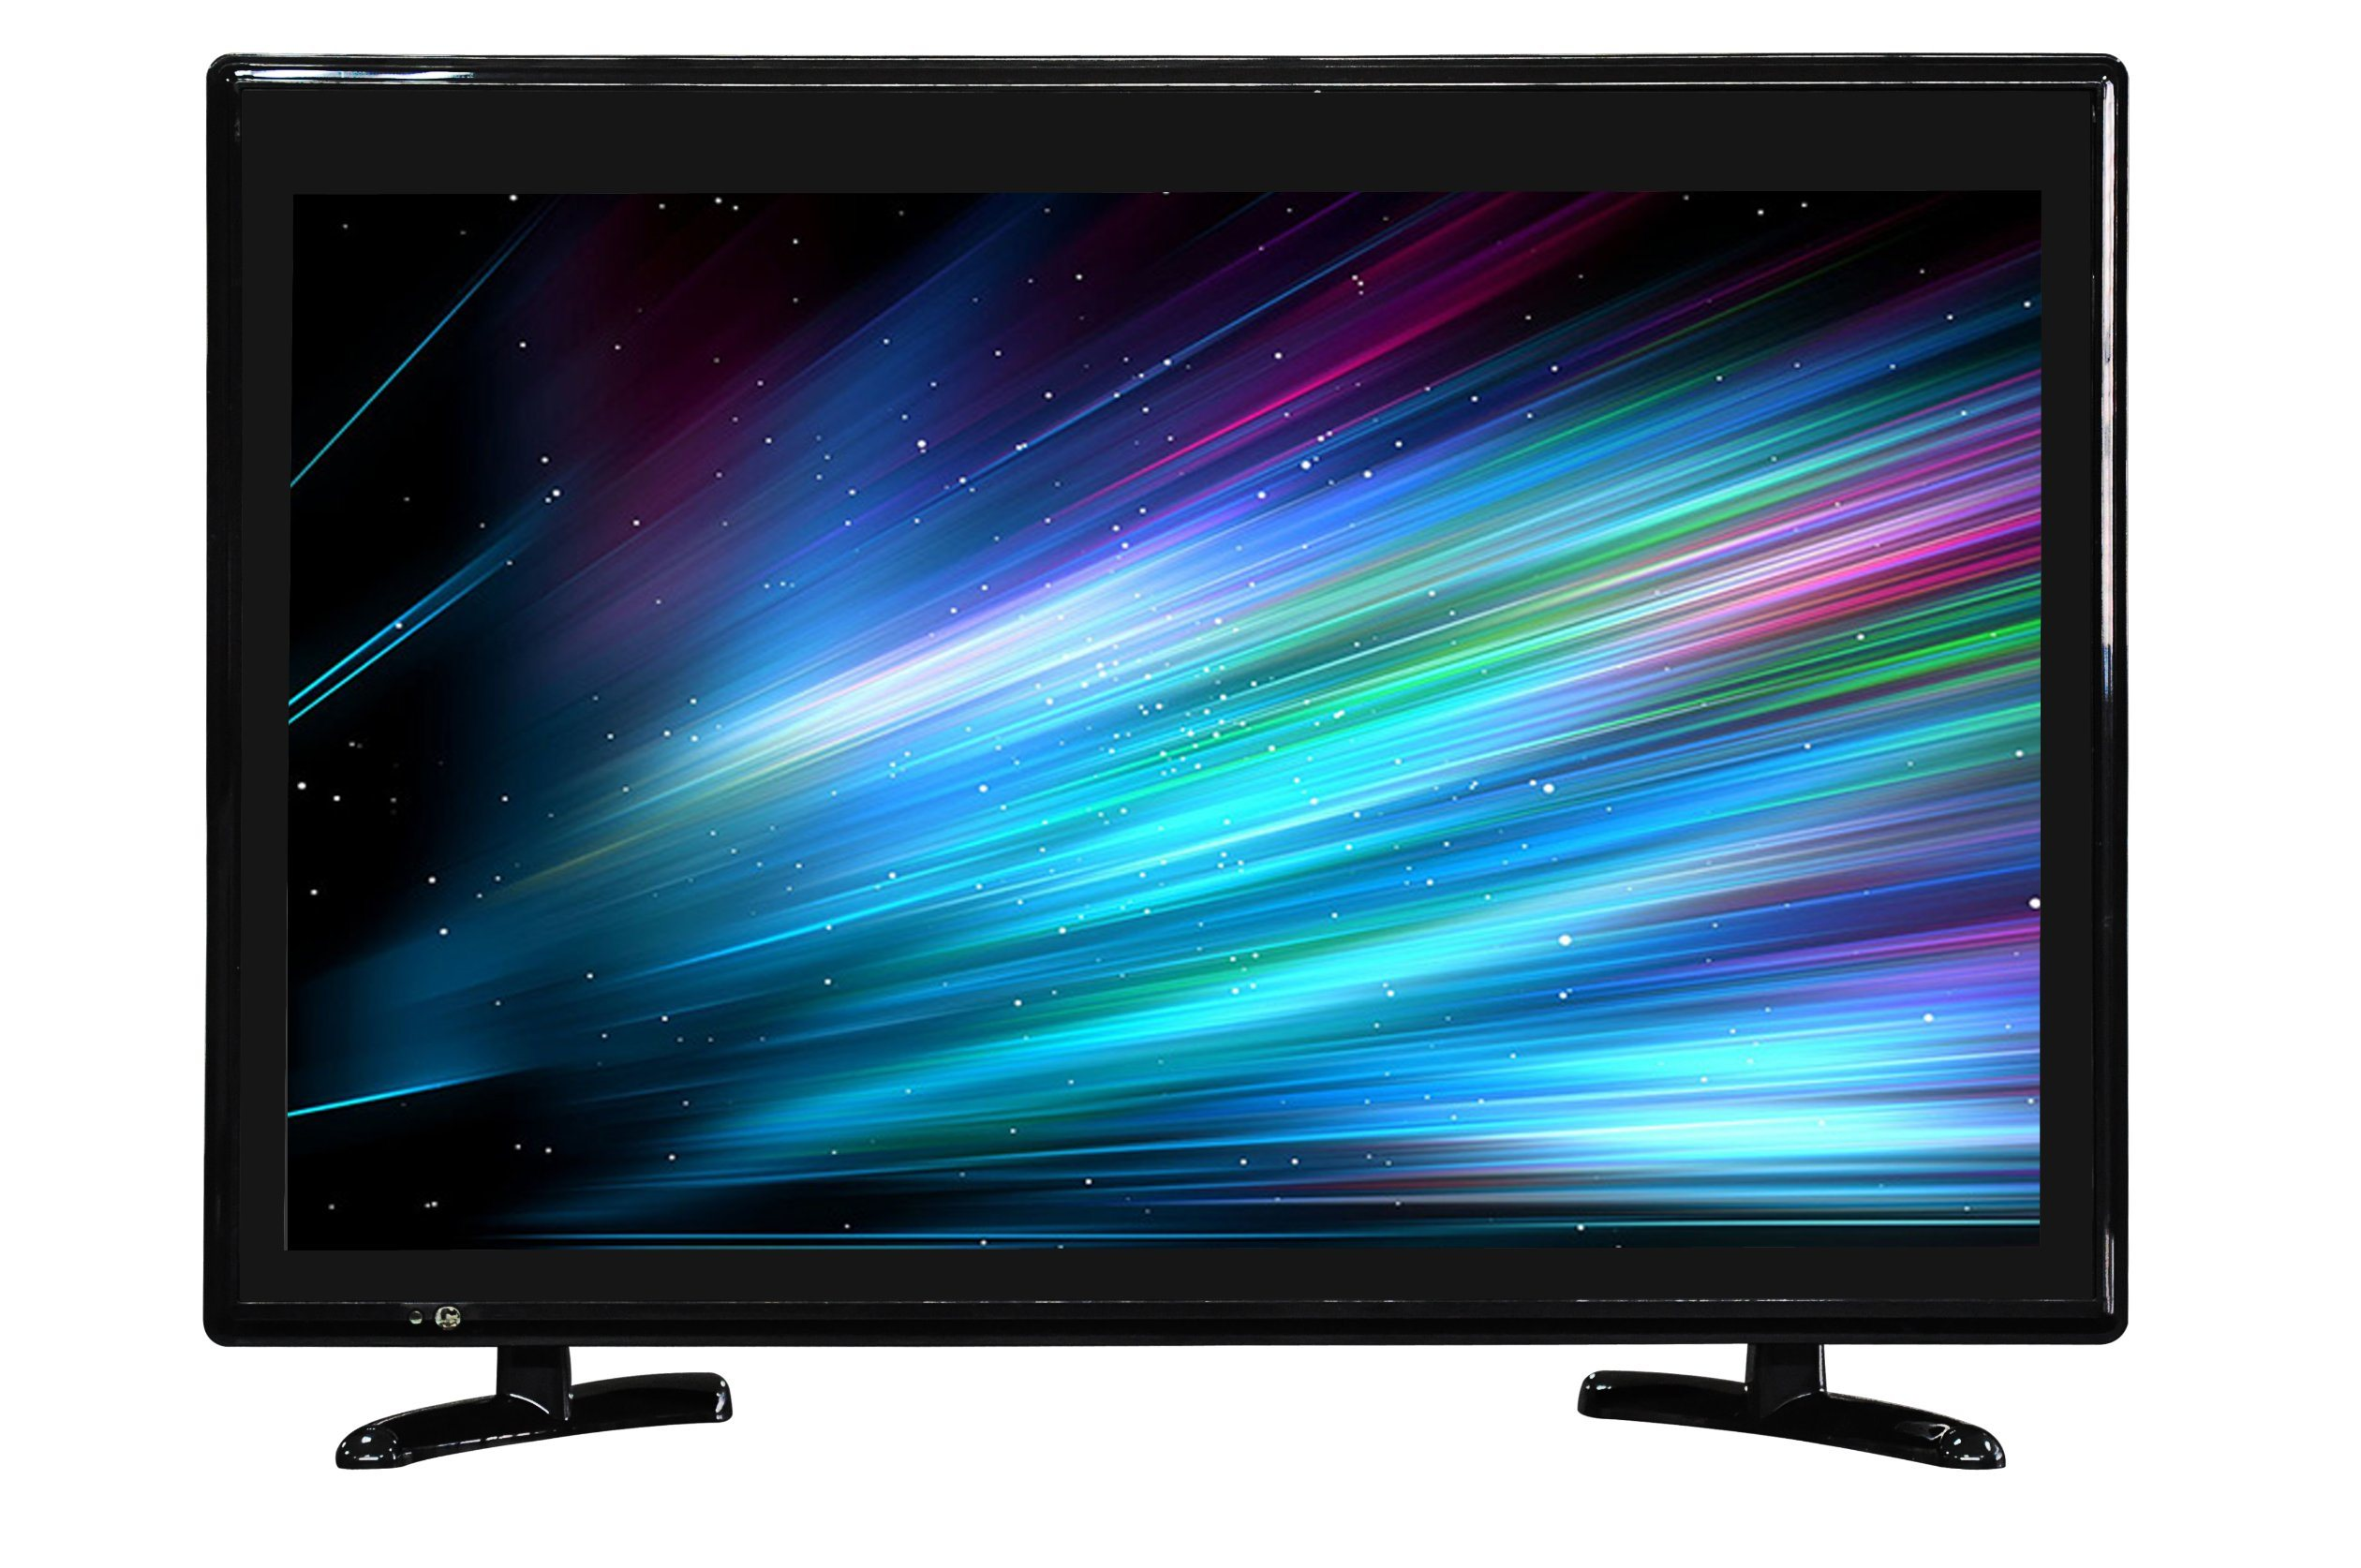 19 Inches 22 Inches LED LCD Color TV for Cheap Sale